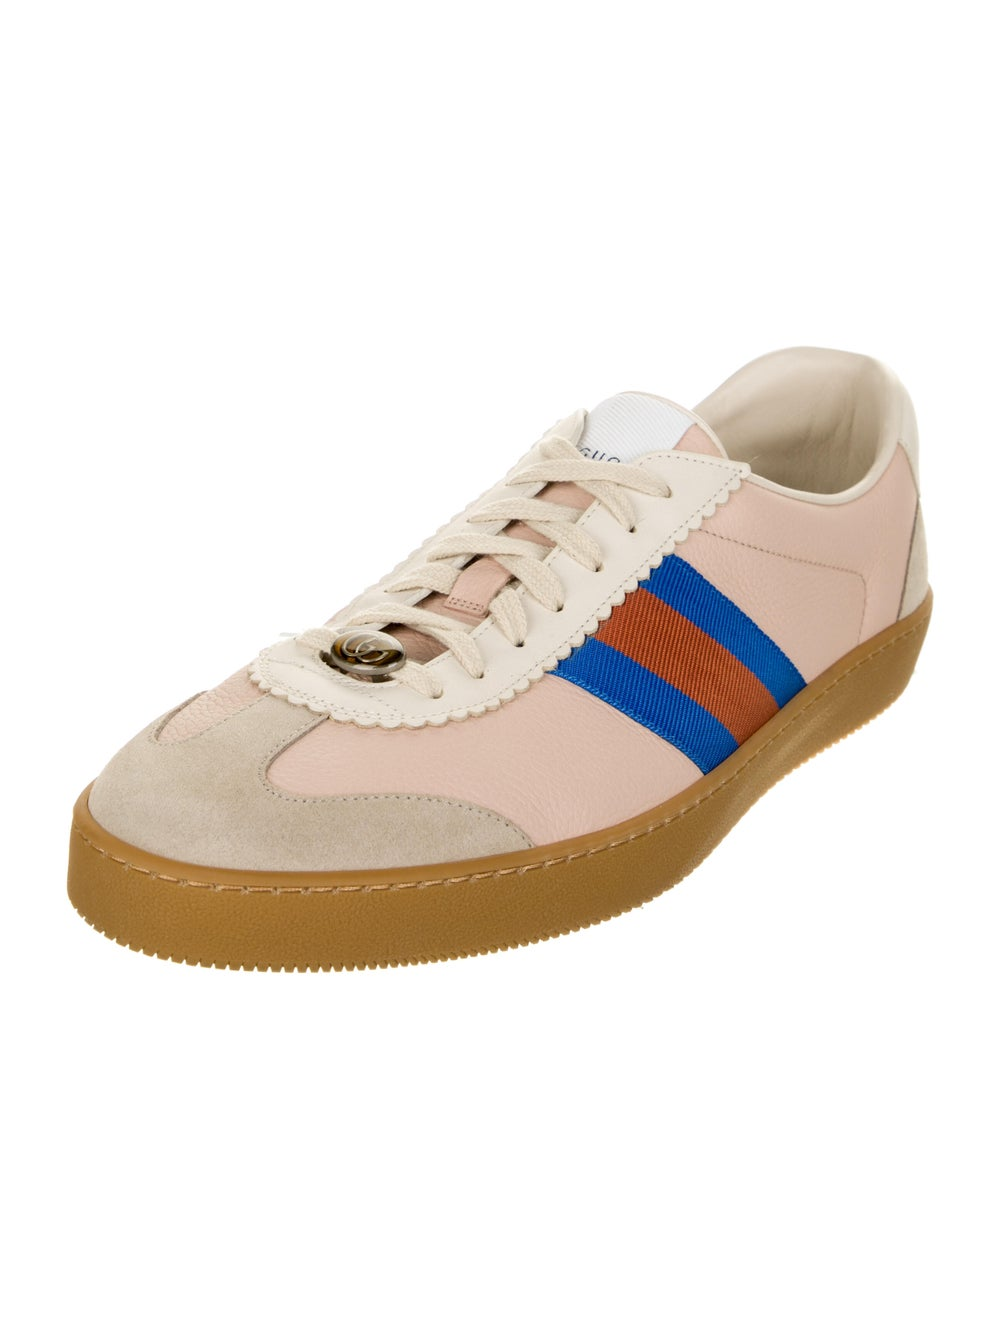 Gucci G74 Sneakers - image 2